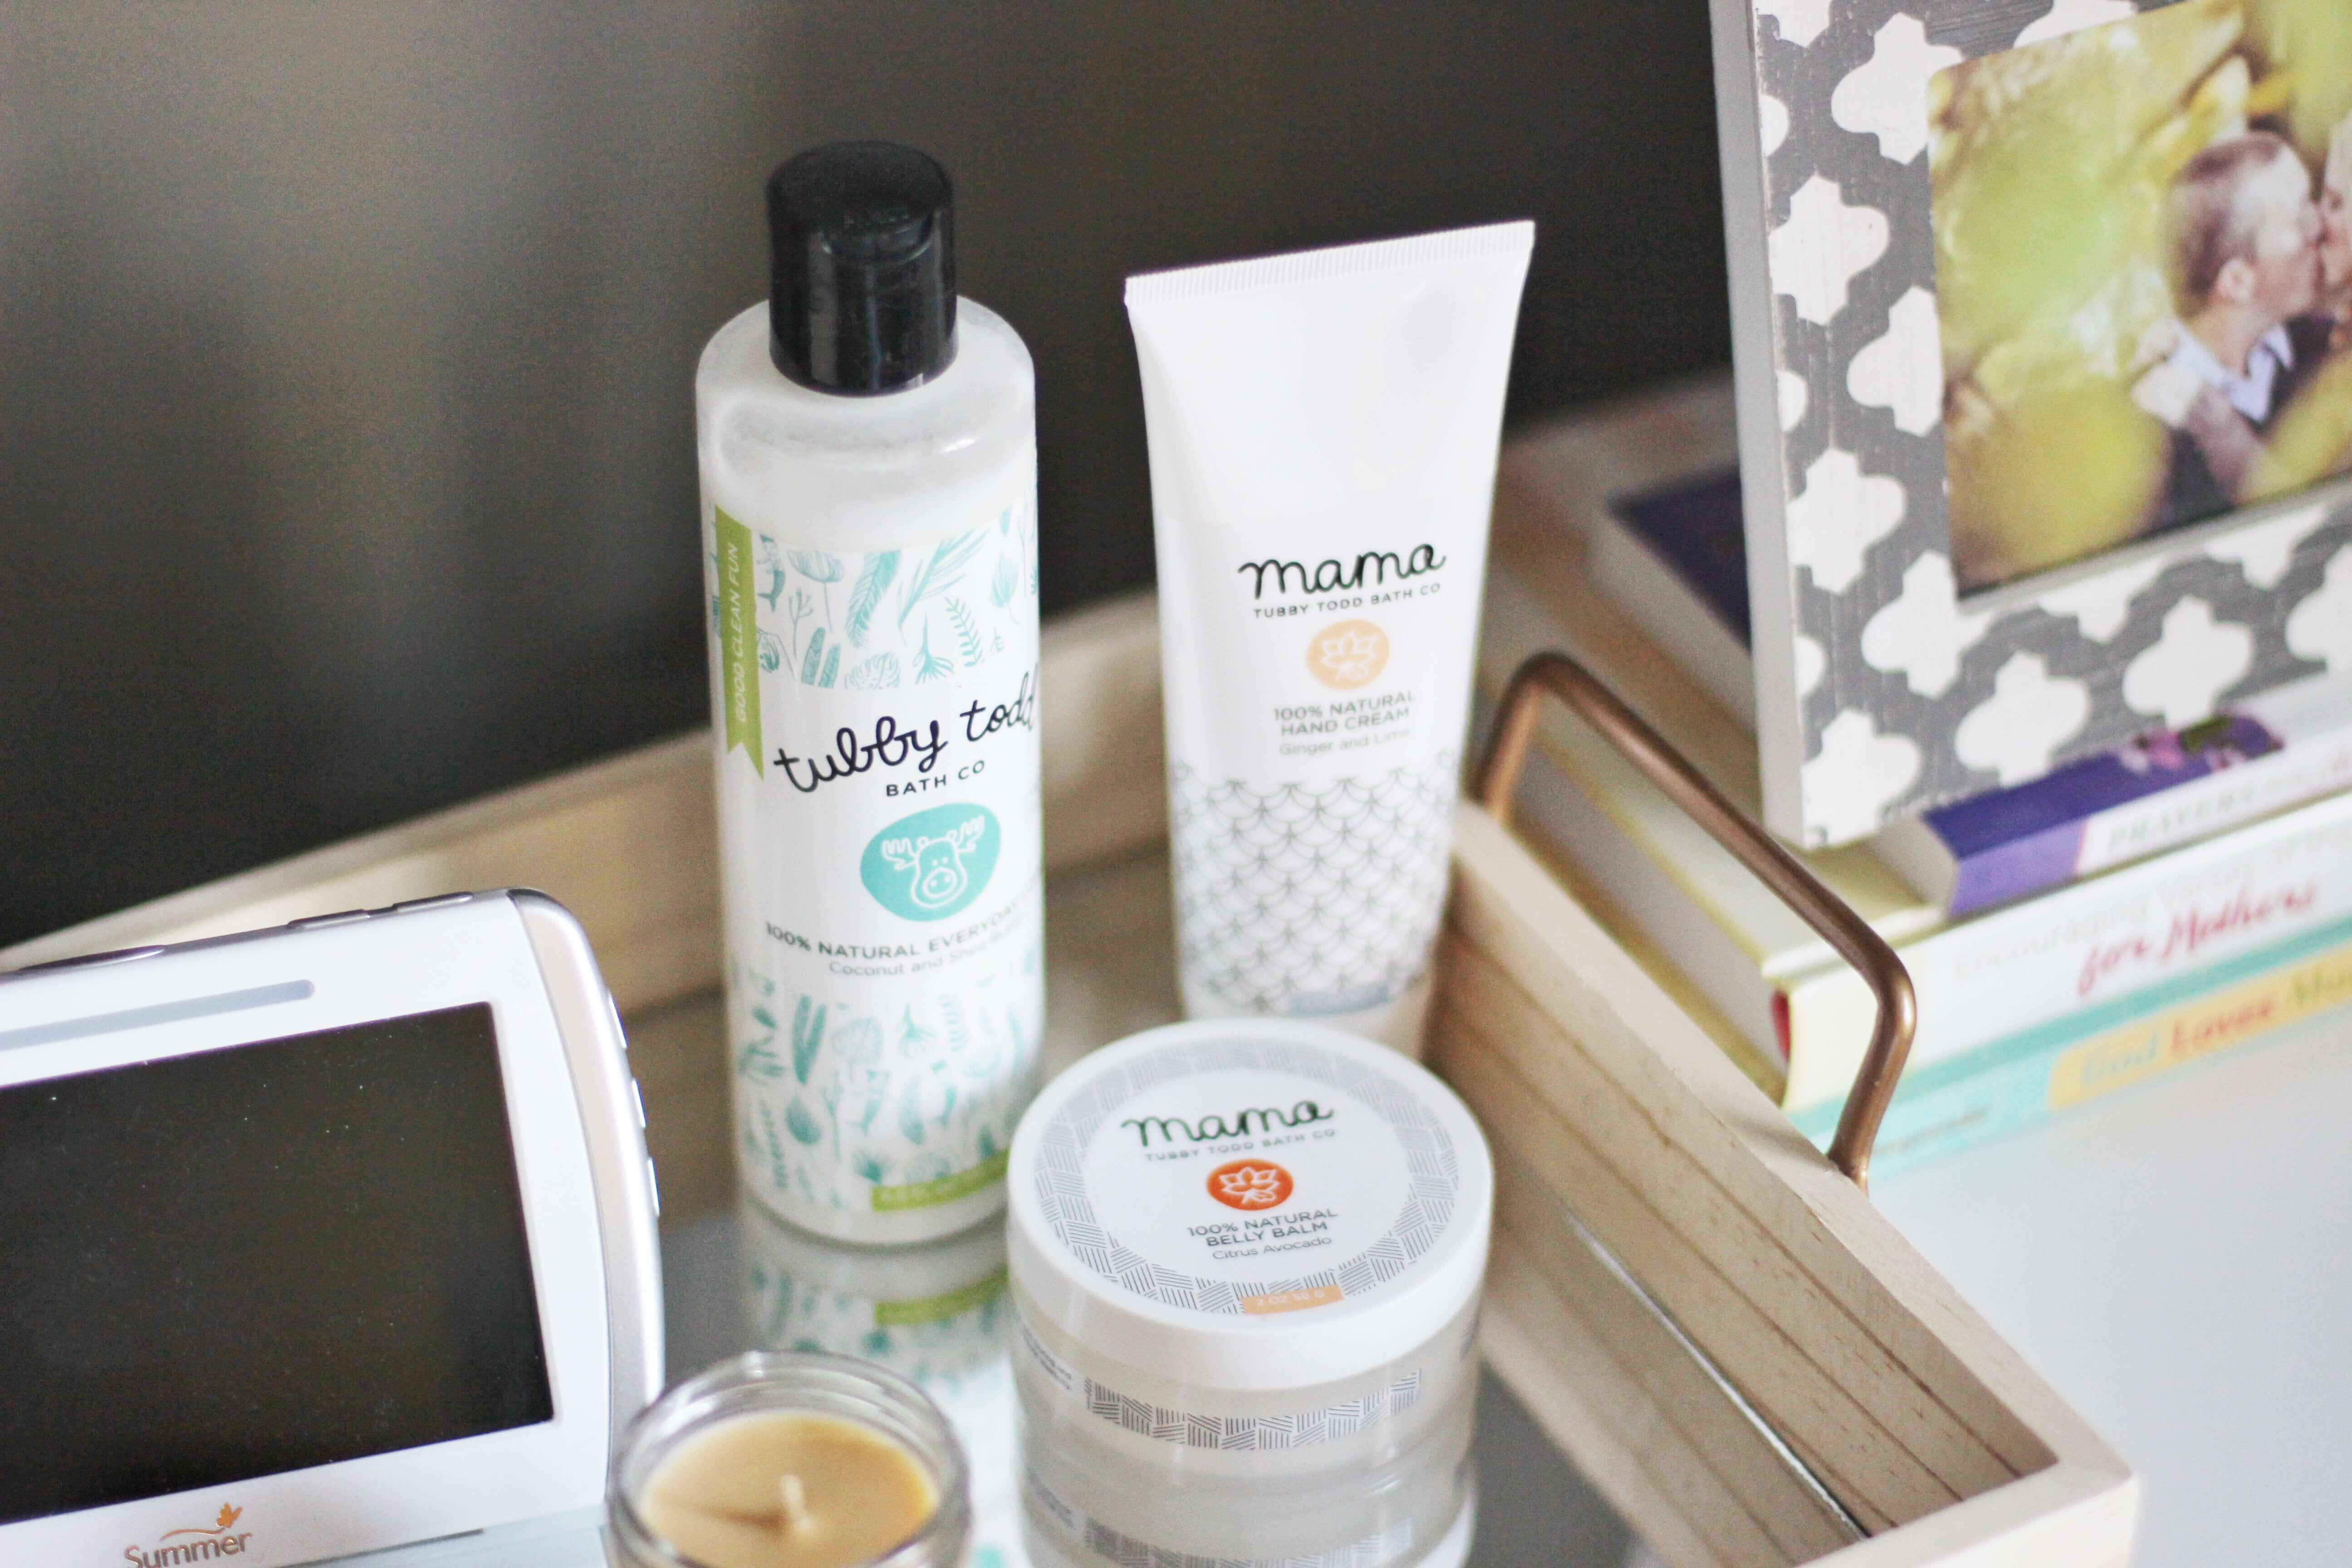 Mama's Skincare by Tubby Todd